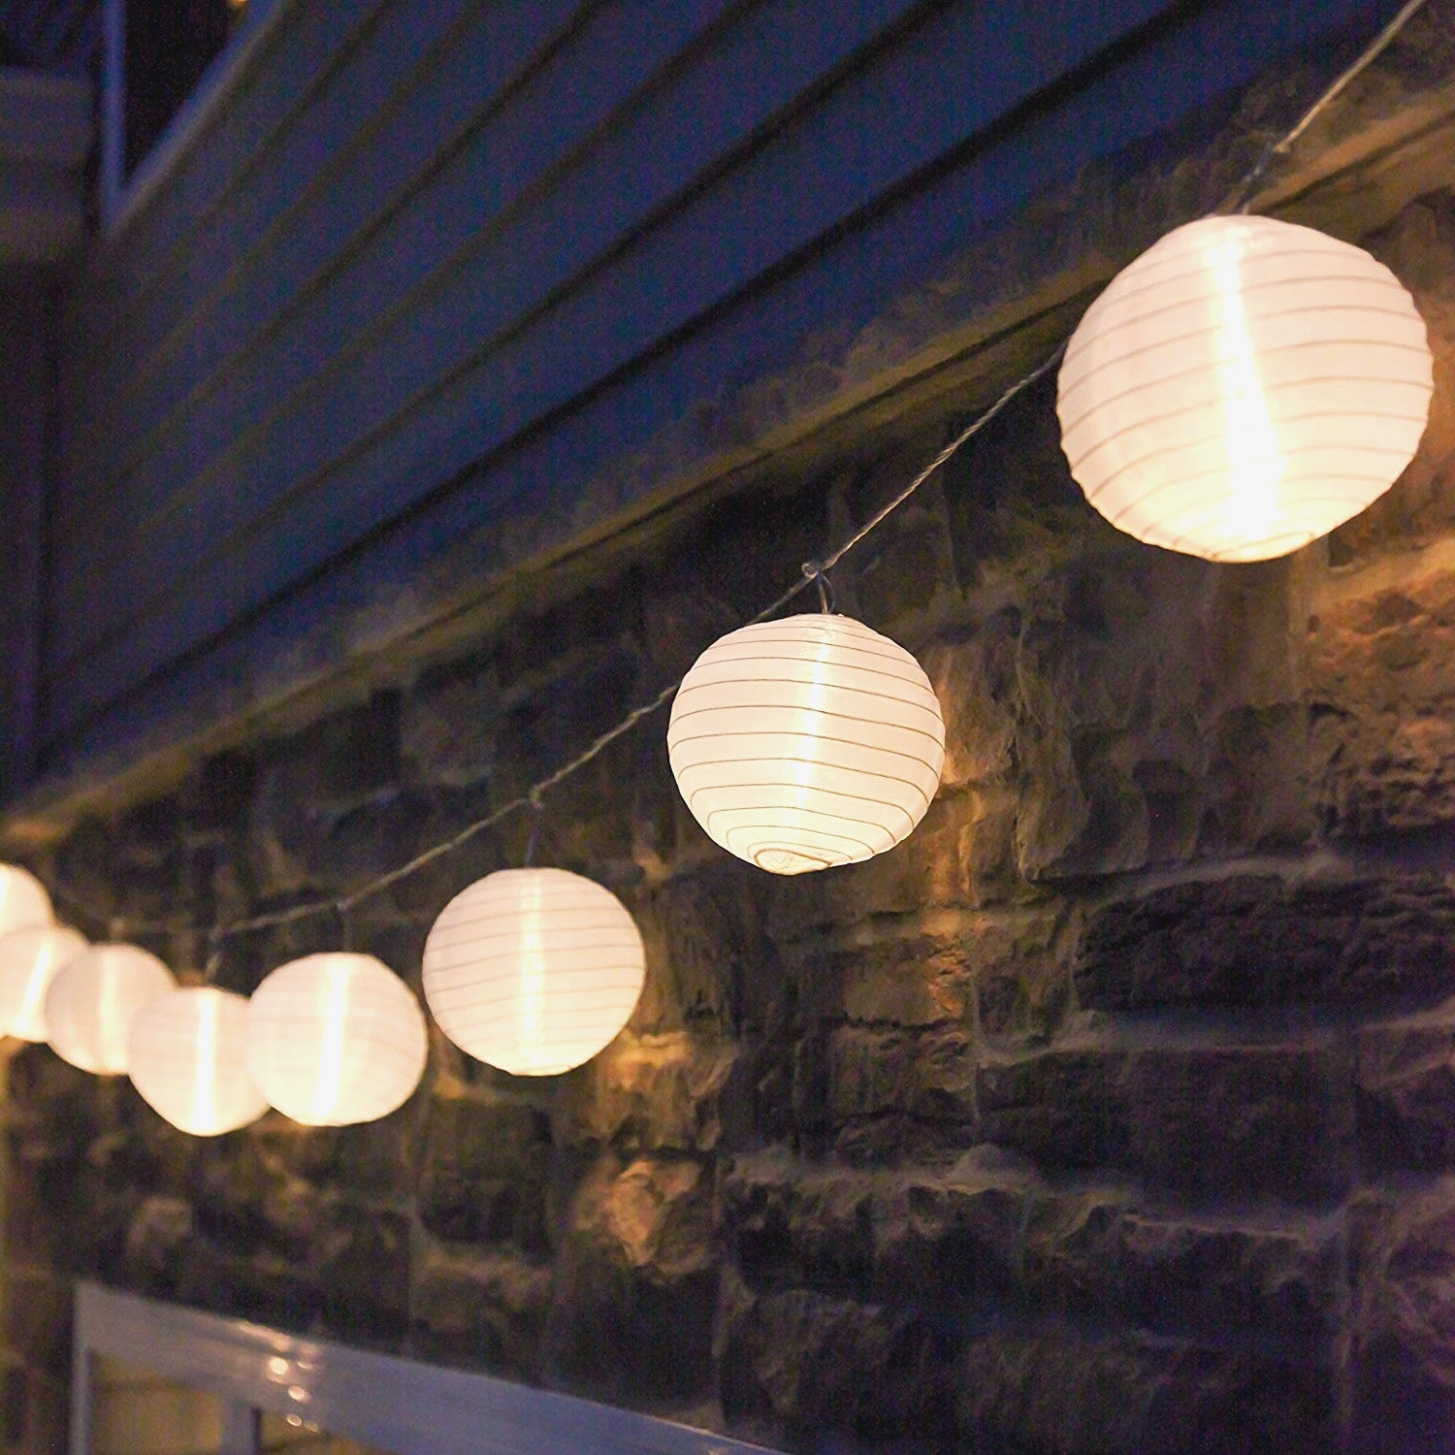 Newest Outdoor Plastic Lanterns Throughout Amazon: 40 Ft. White Outdoor String Light, 40 Mini Lanterns, 40 (Gallery 19 of 20)